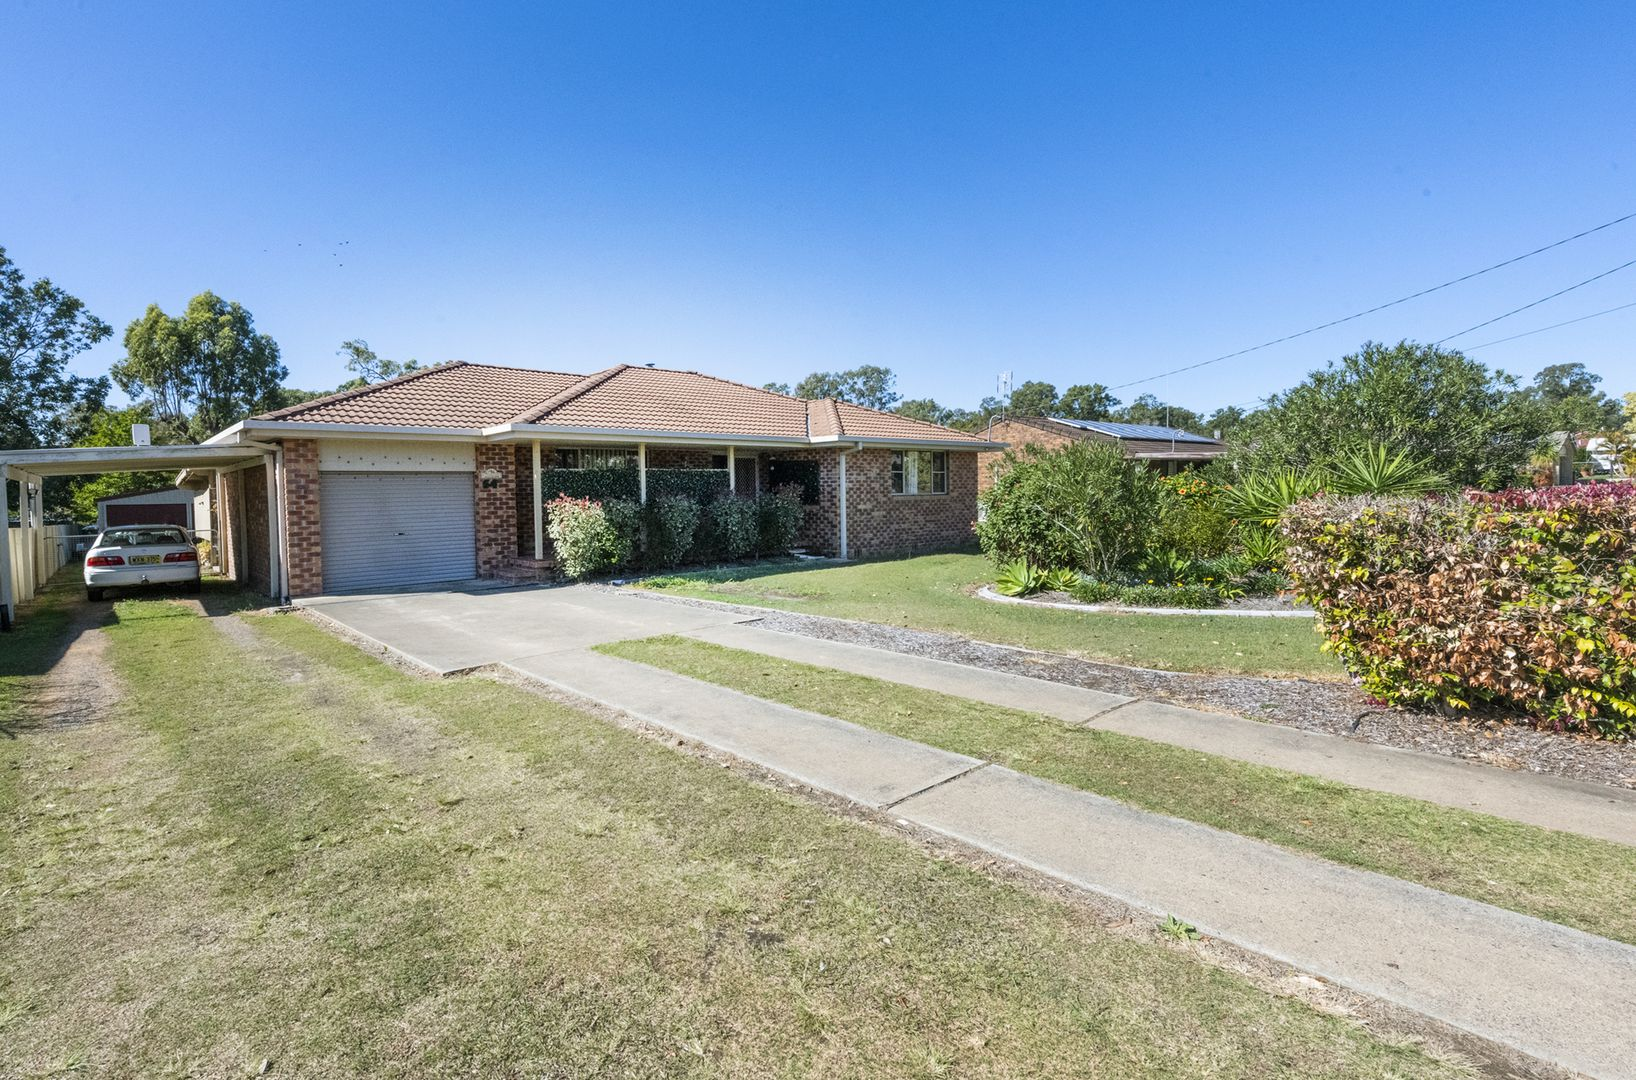 54 Lakkari Street, Coutts Crossing NSW 2460, Image 1